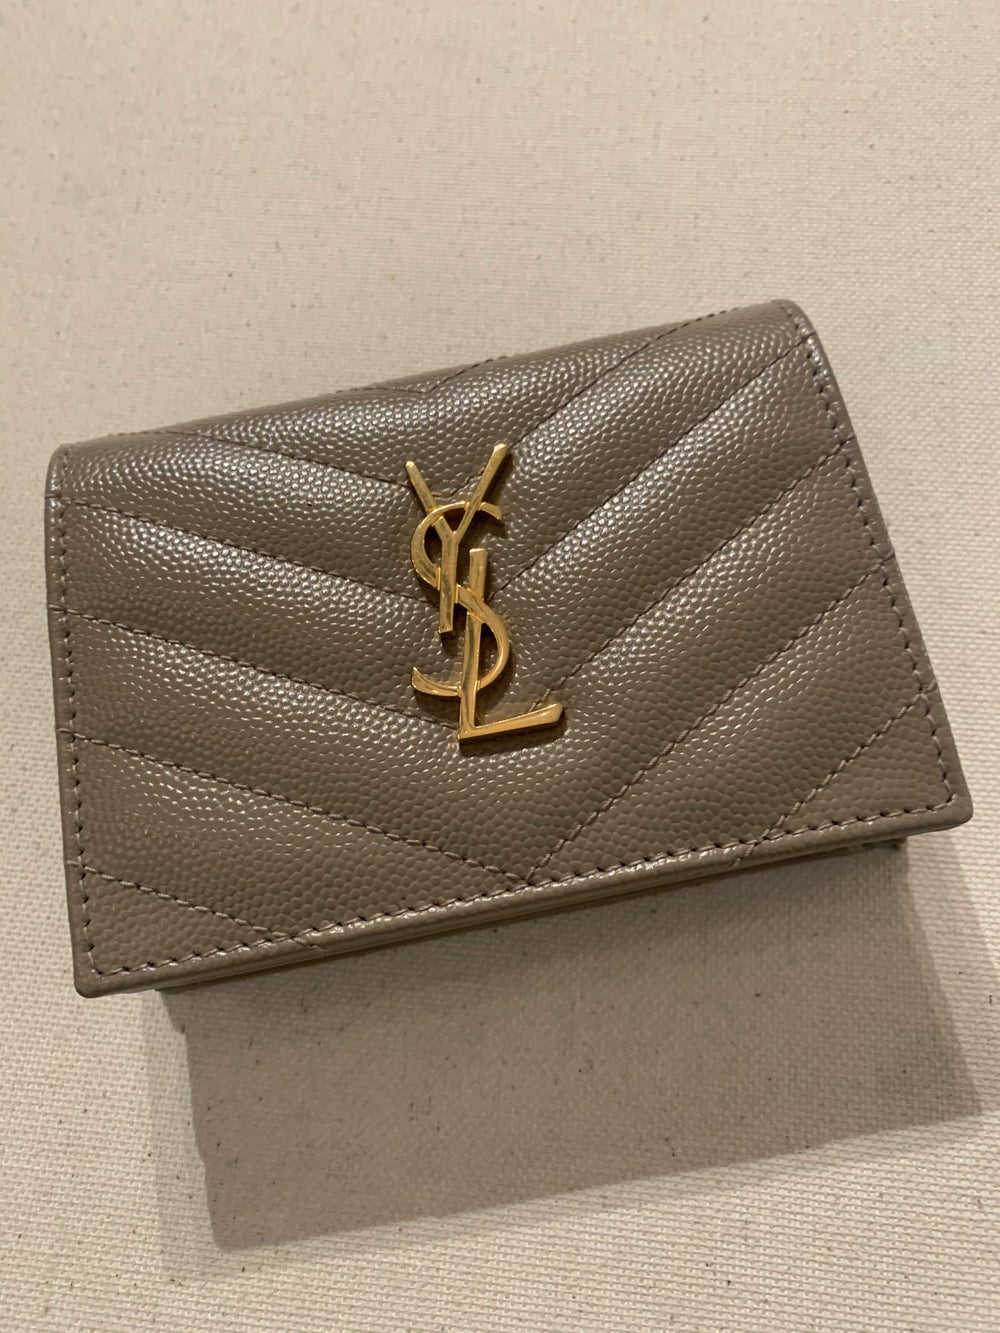 Image of YSL WALLET